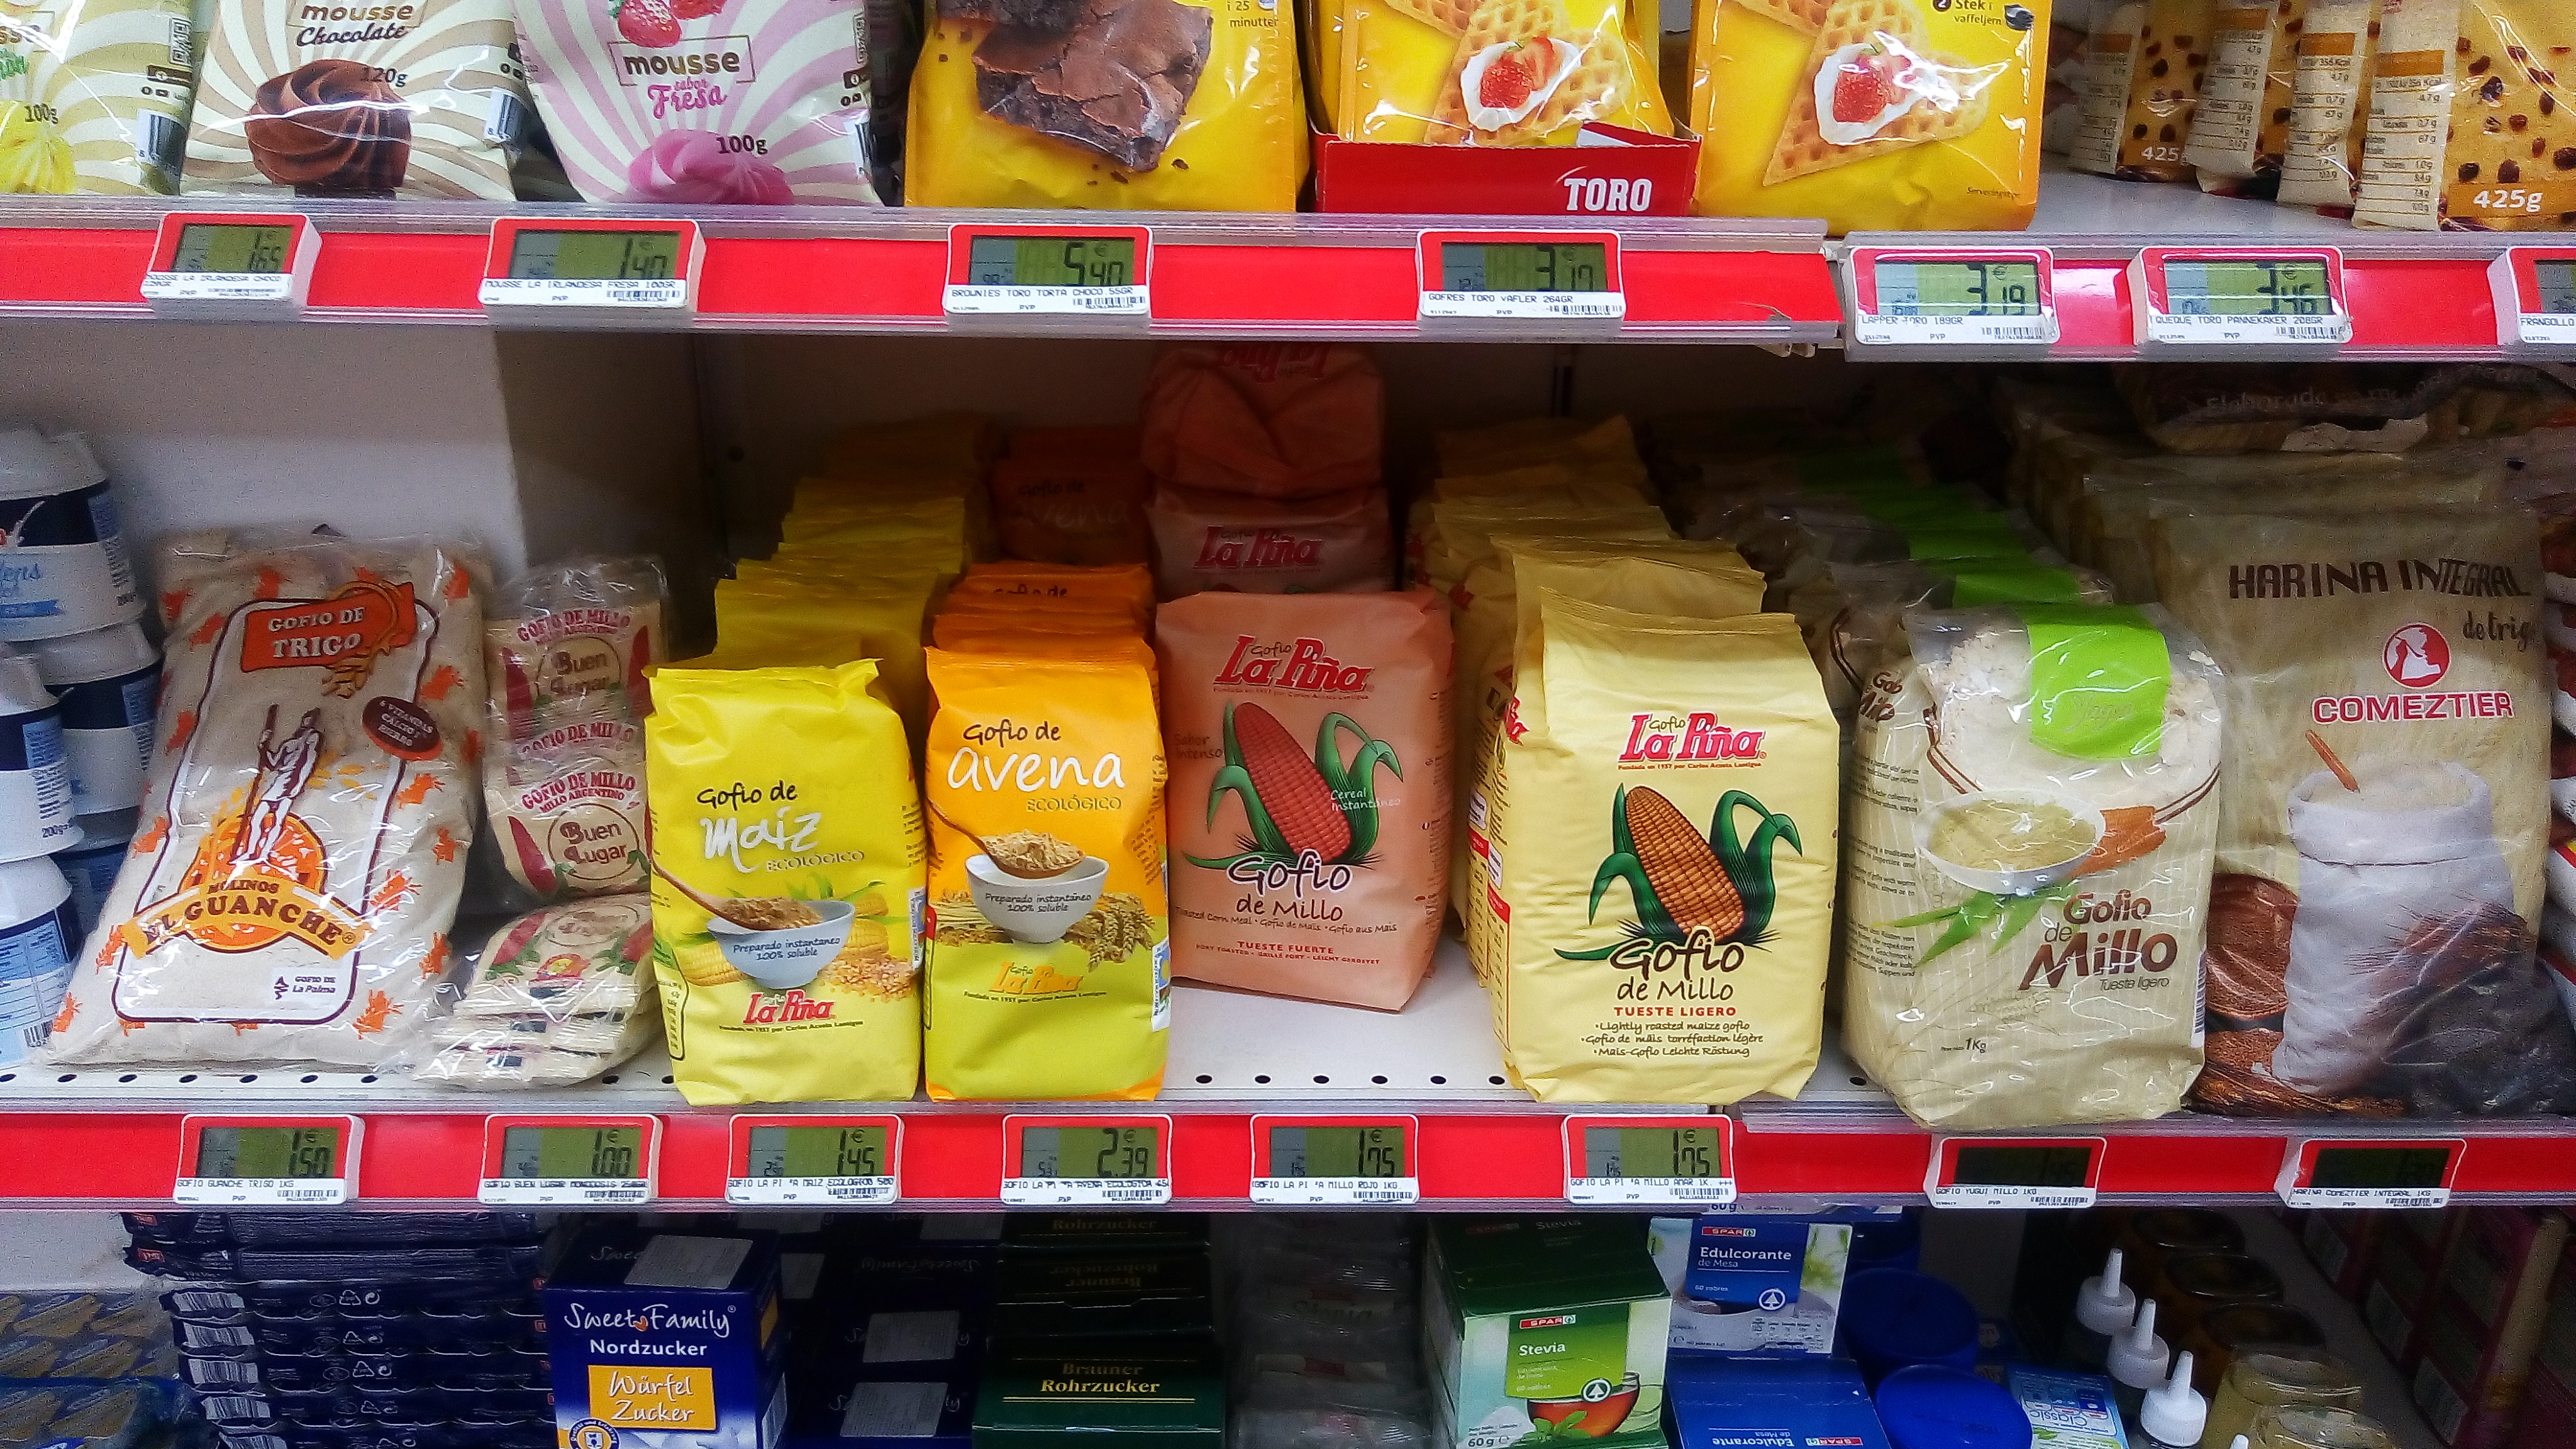 Gofio on in Gran Canaria supermarket, stacked beside sugars and condensed milk